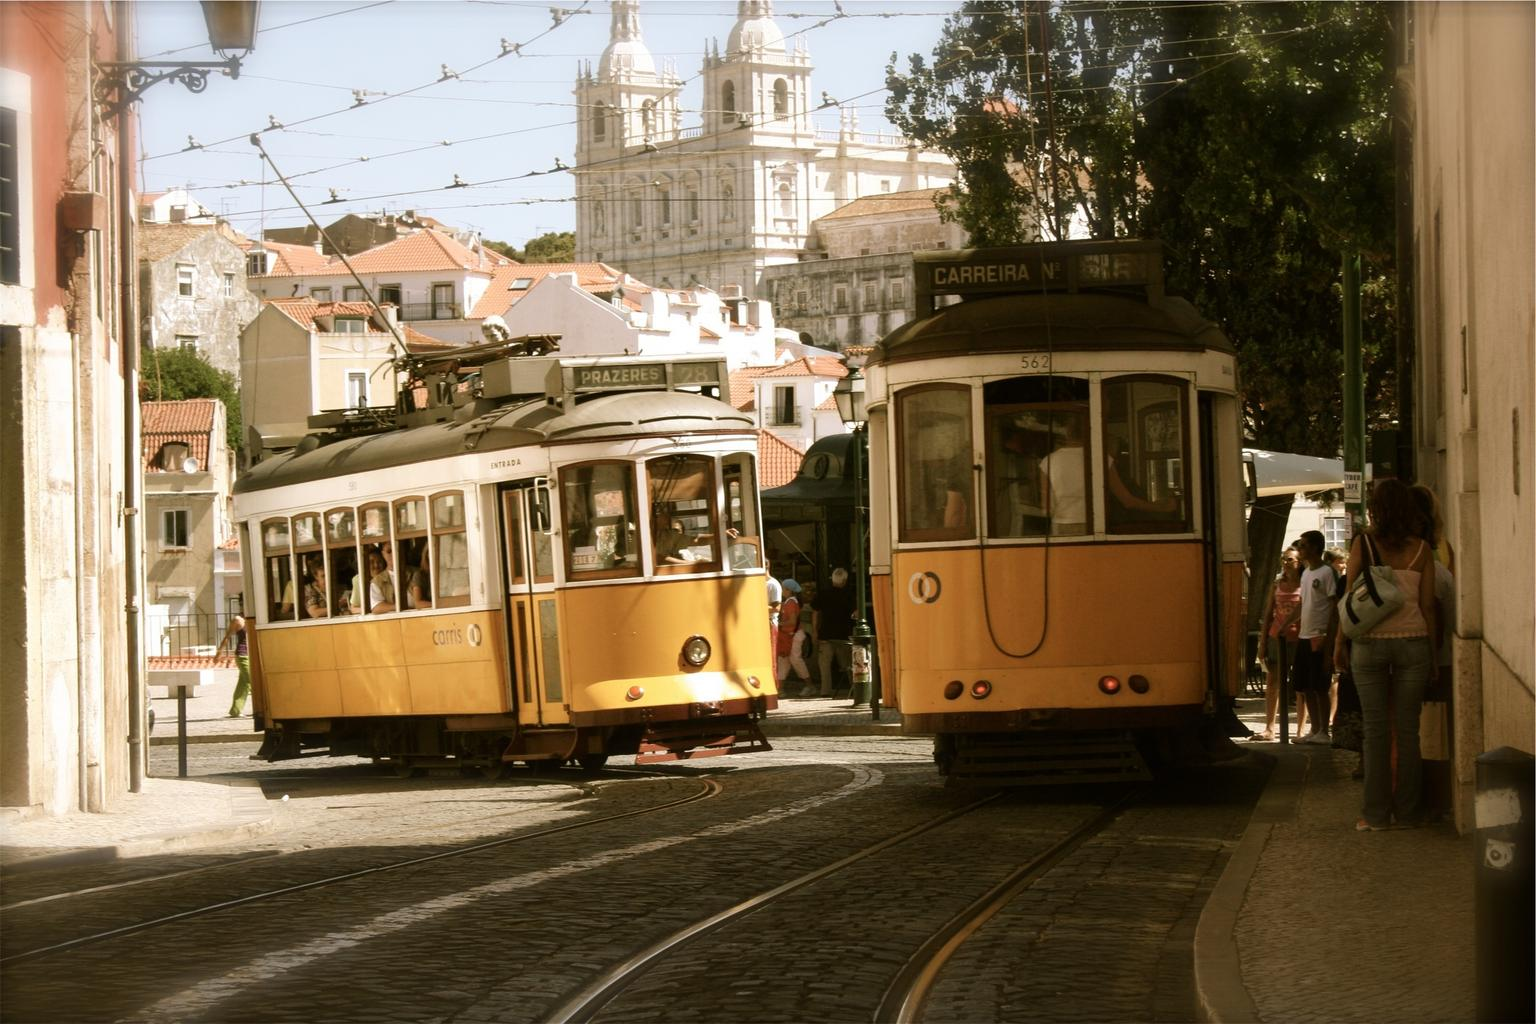 Free Images - cable cars transportation street